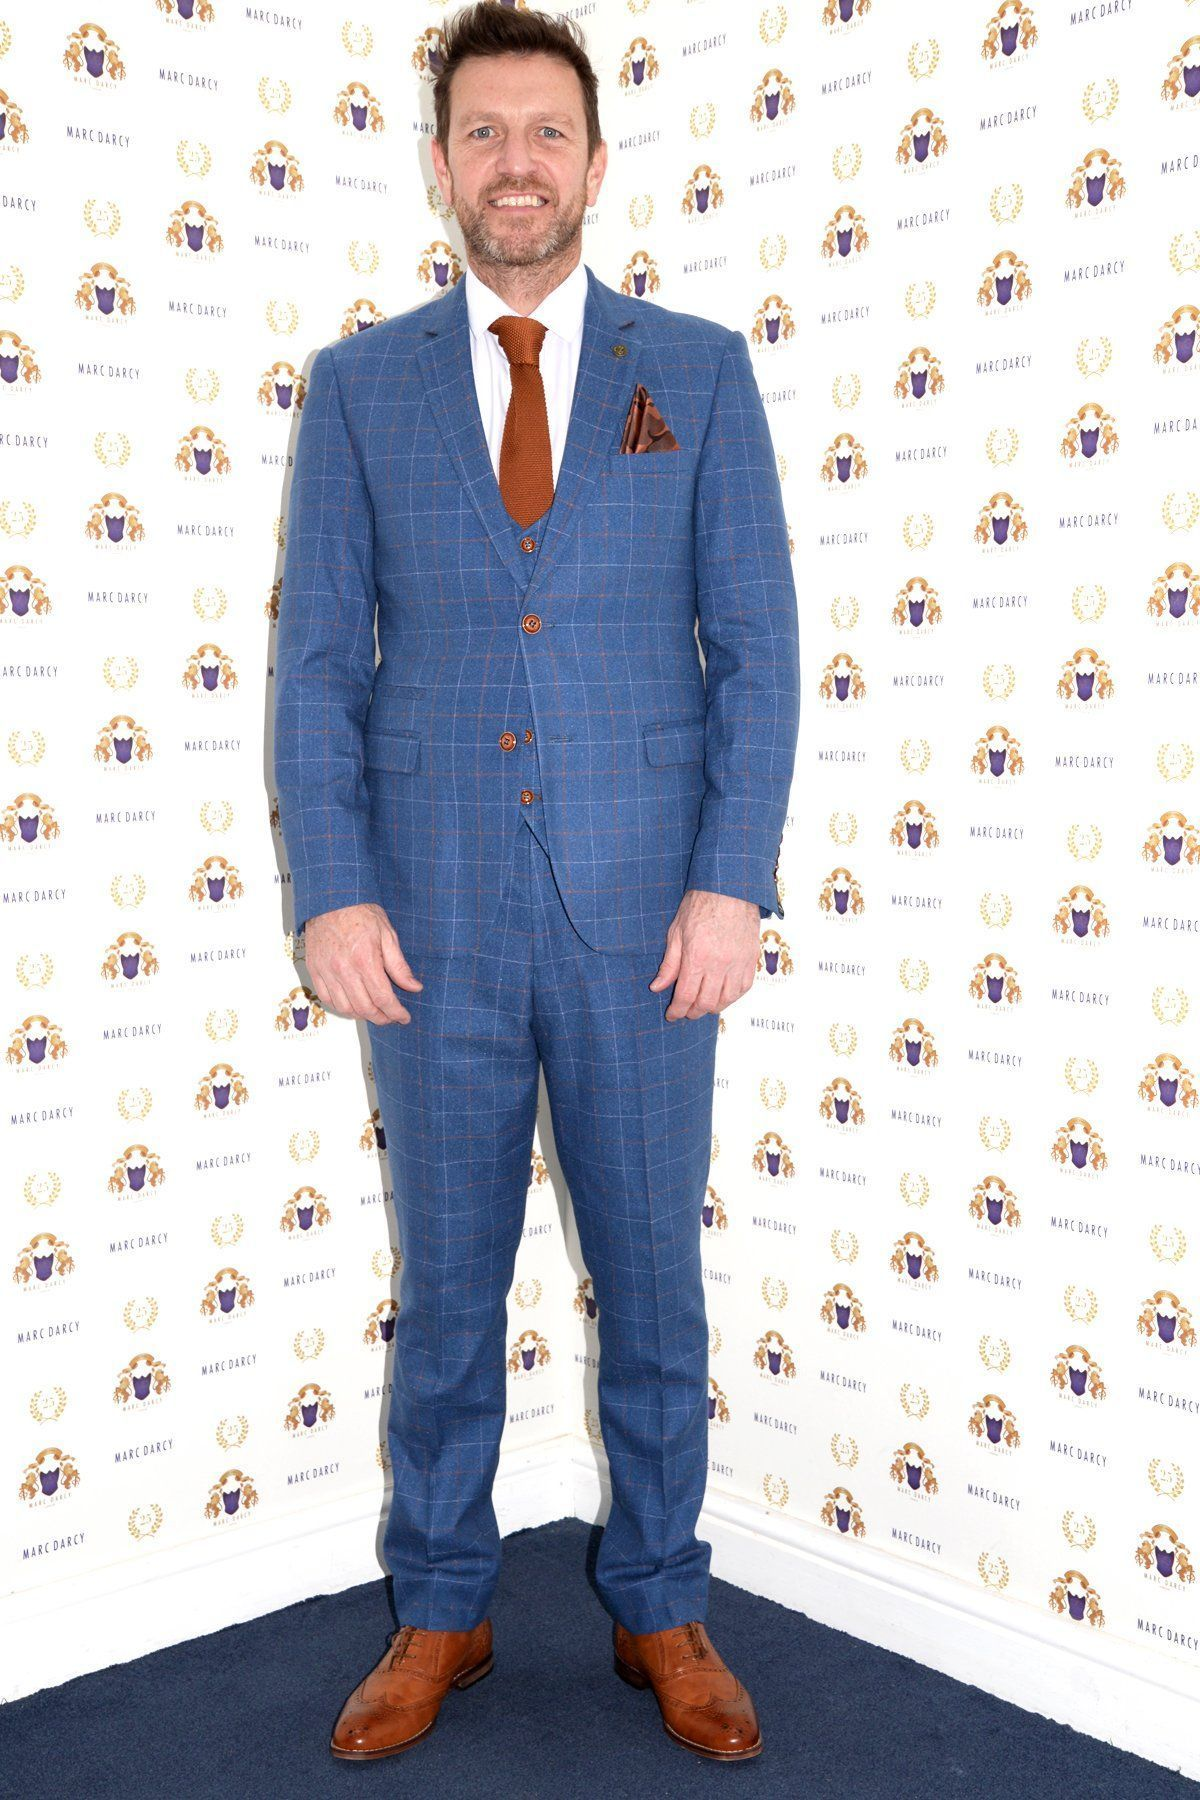 dce2ed6a5798 MATTHEW - Sky Blue Tweed Suit As Seen On Lee Sharpe - Marc Darcy ...